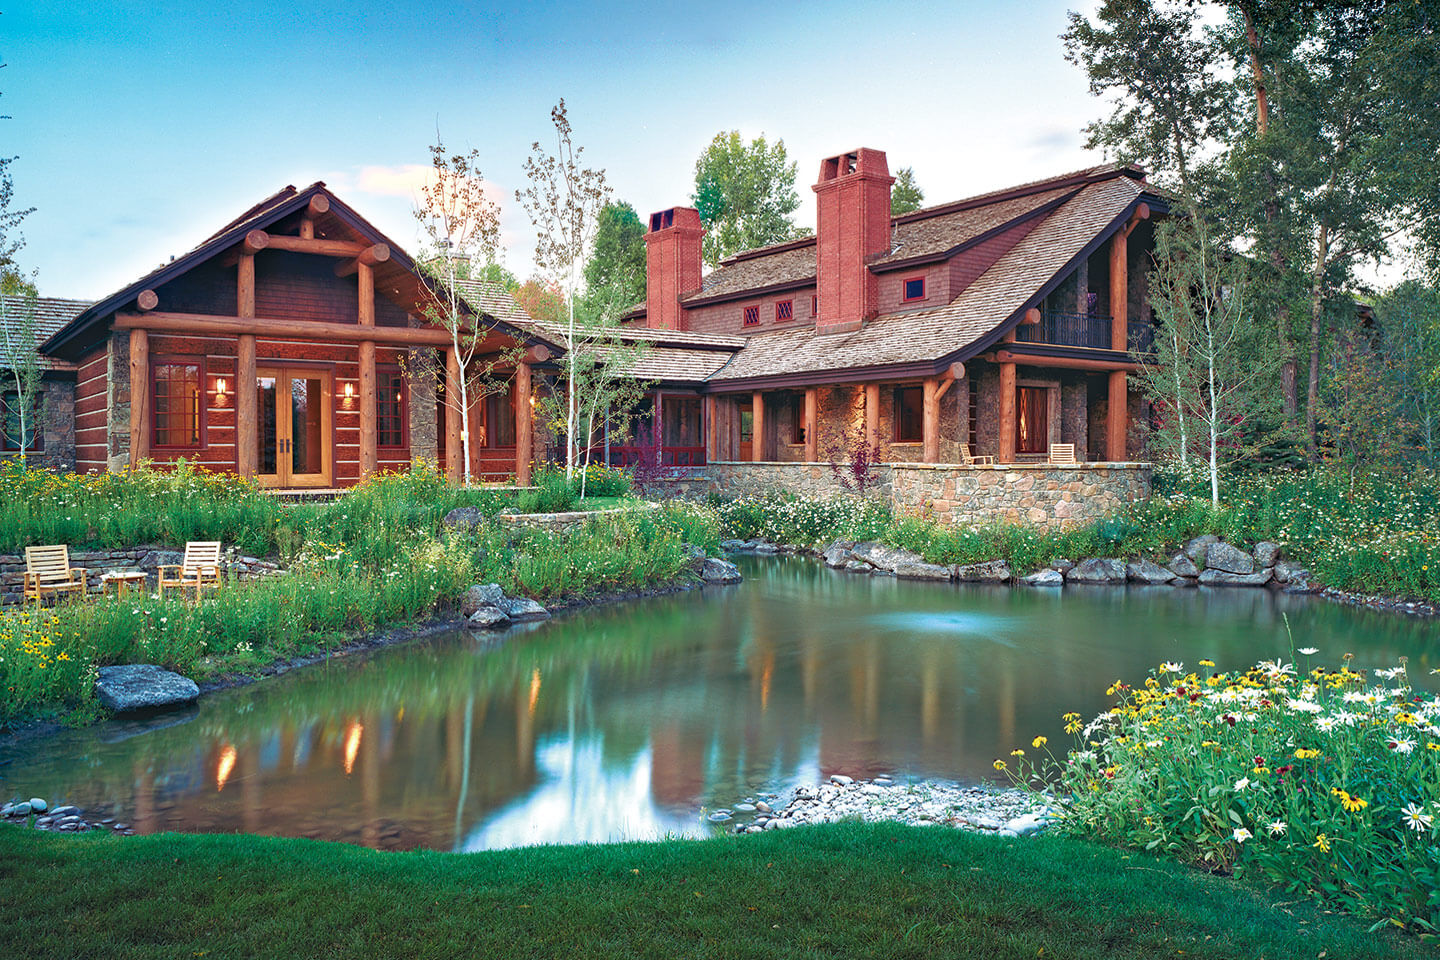 Log home with stone and brick chimneys